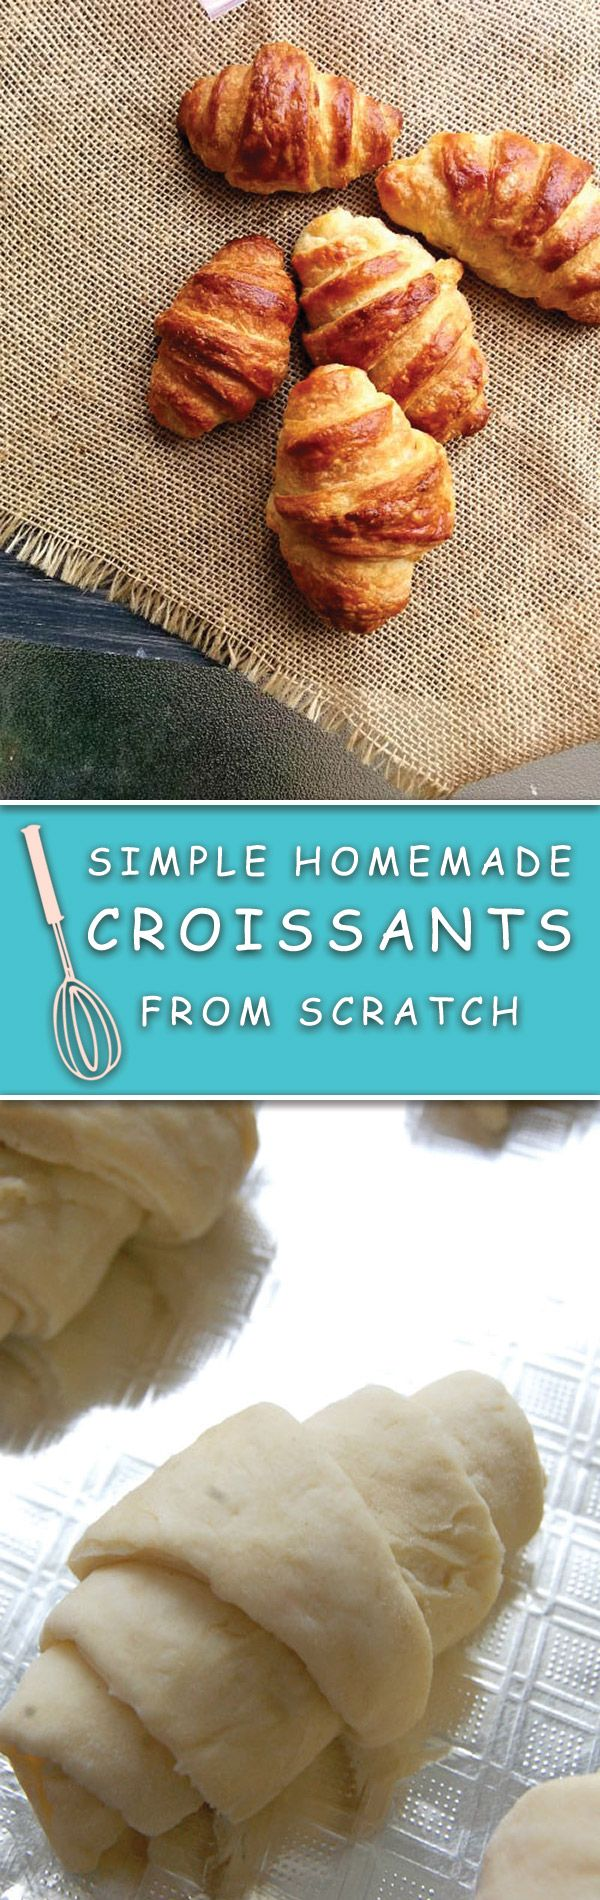 How To Make Croissants From Scratch - stop thinking & bake your very own homemade CROISSANTS, super easy steps, in no time you will have croissants better than bakery!